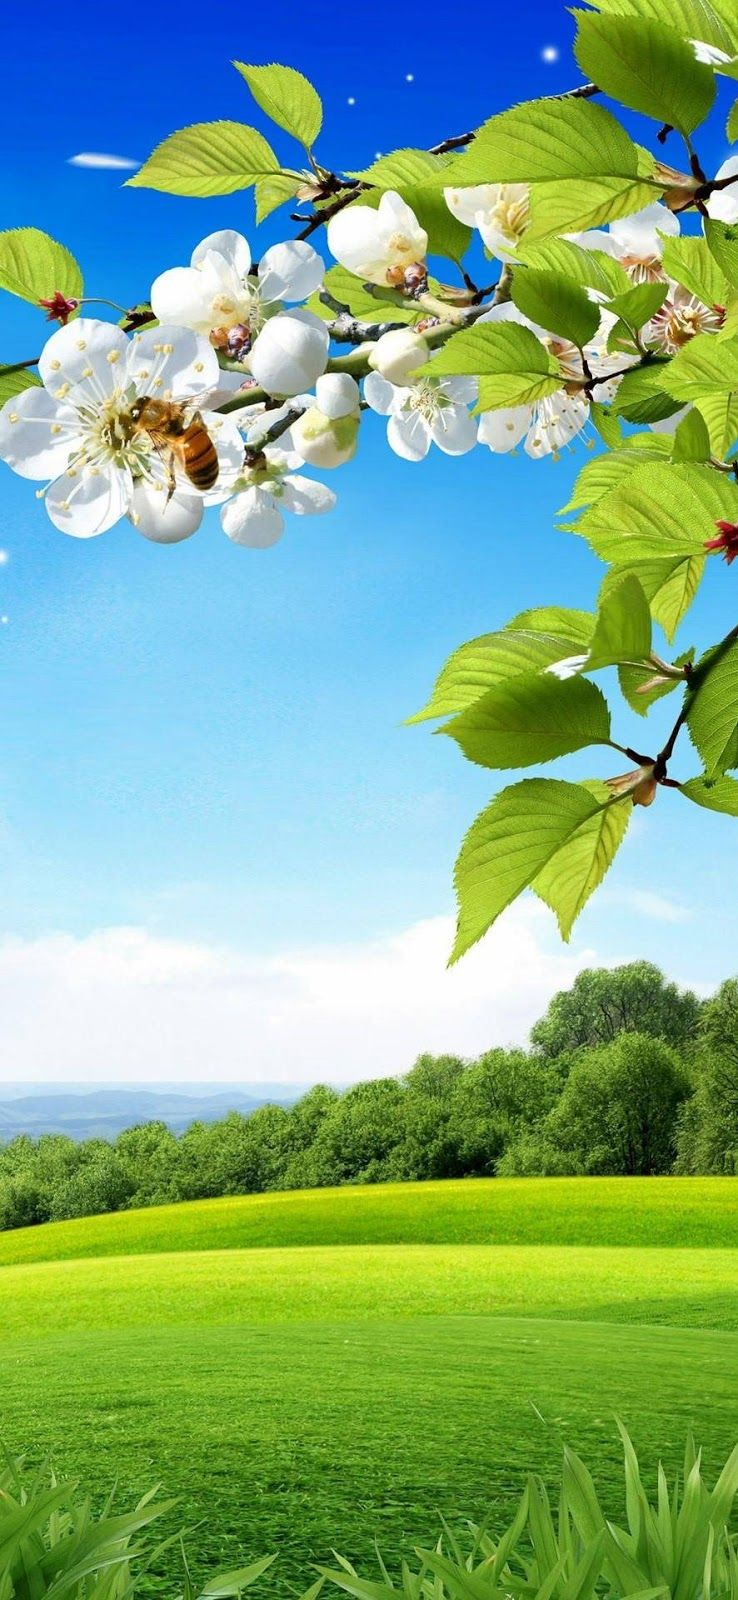 Nature Wallpaper Download In 2020 With Images Beautiful Nature Wallpaper